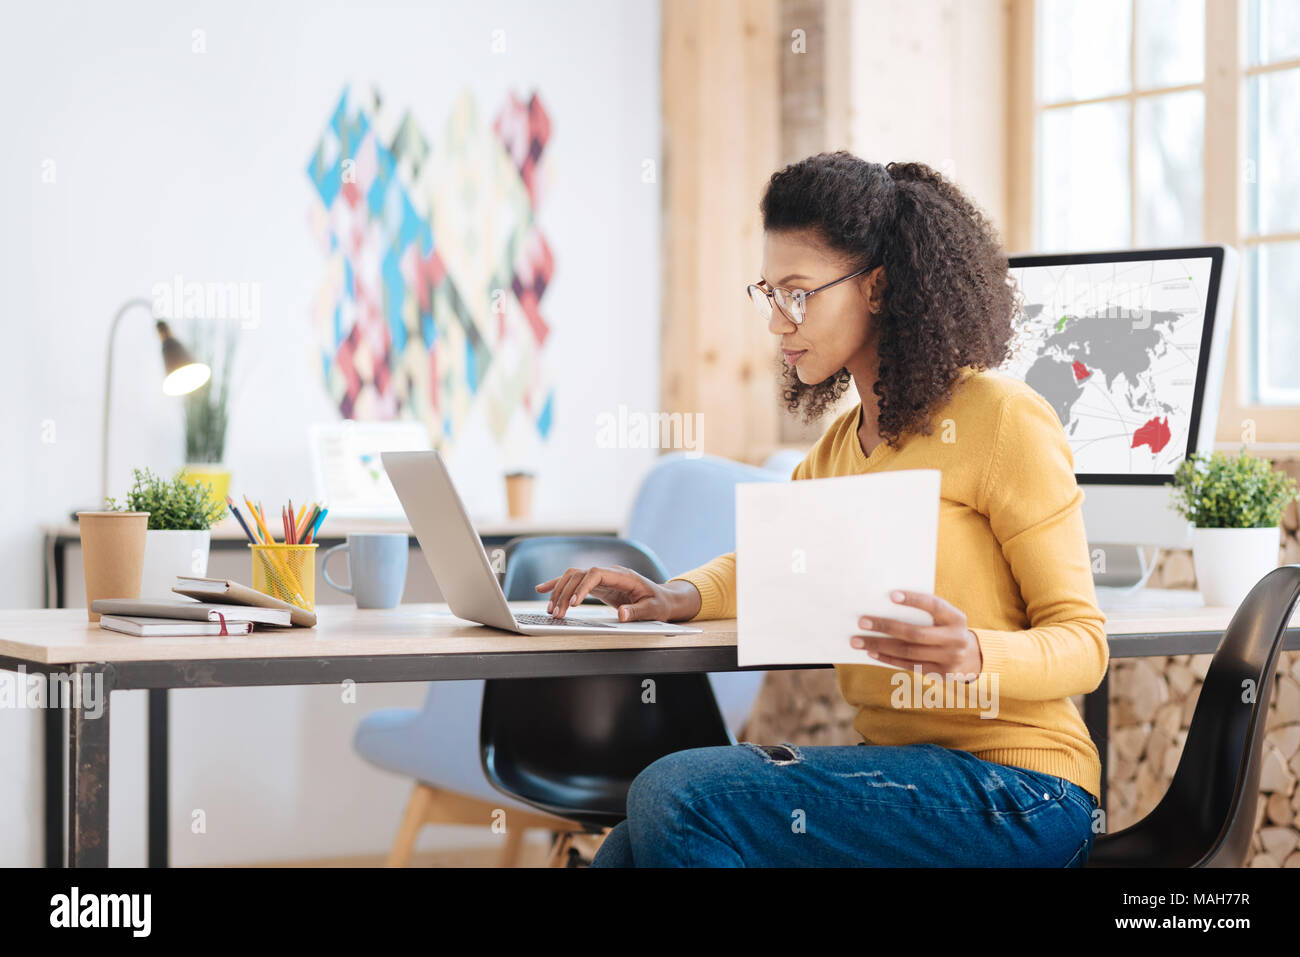 Concentrated young businesswoman working on her laptop - Stock Image